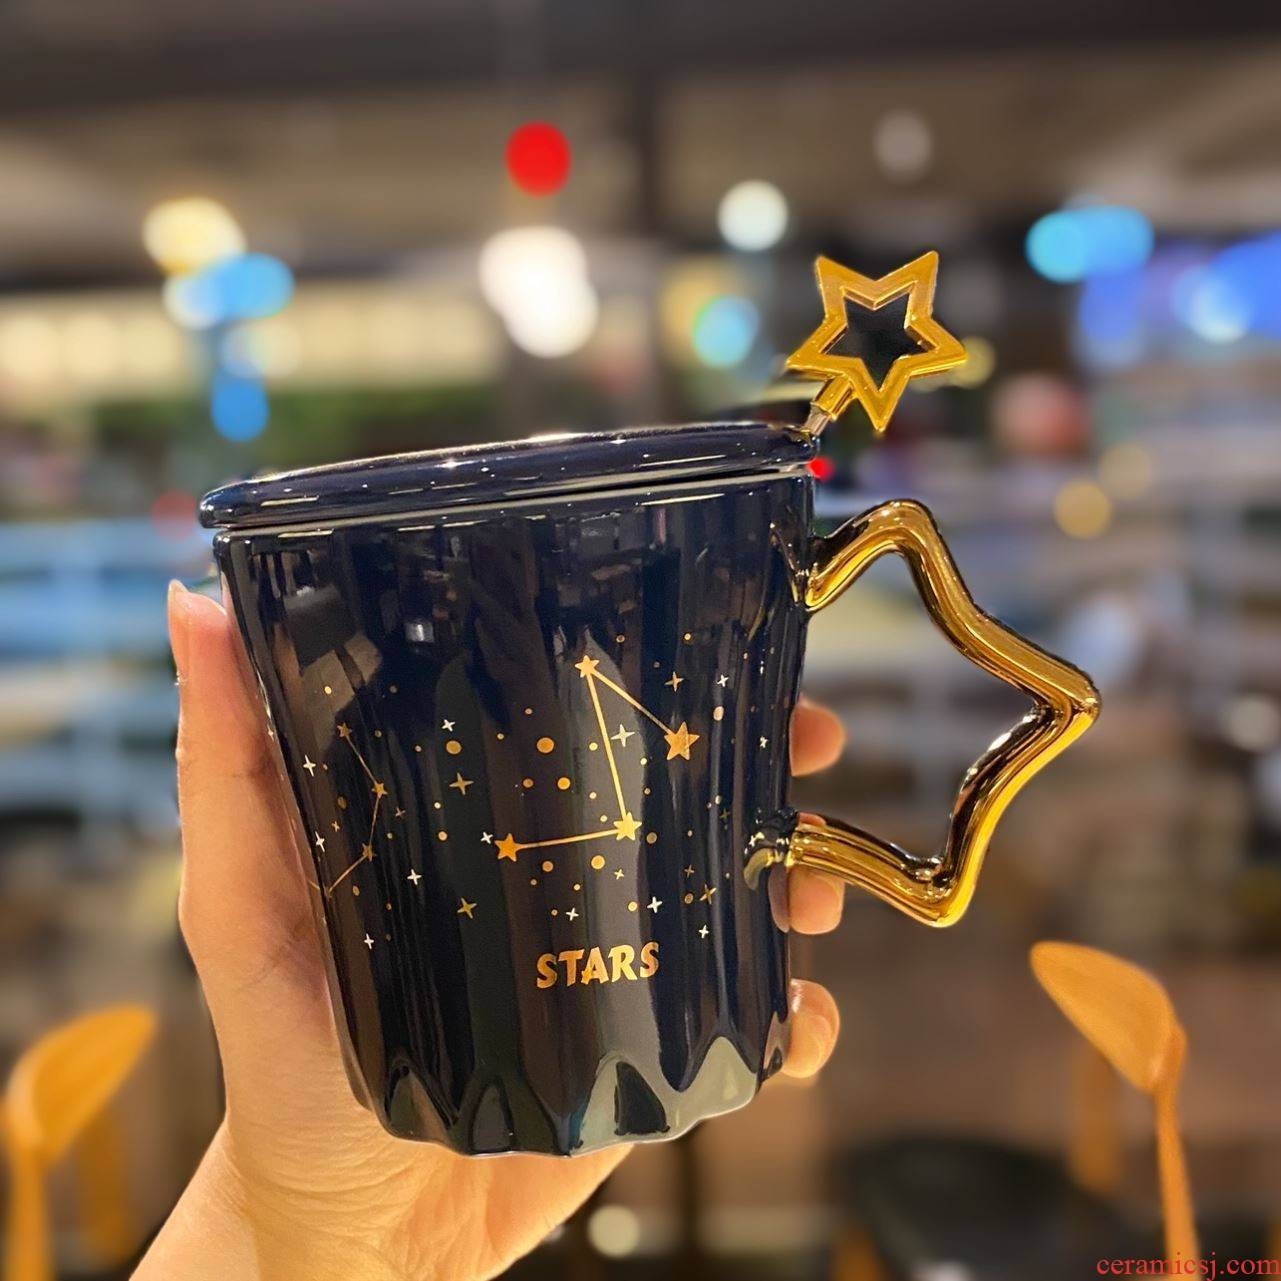 Light small European - style key-2 luxury key-2 luxury constellation ceramic cup golden ultimately responds a cup of big capacity with cover the dormitory office keller